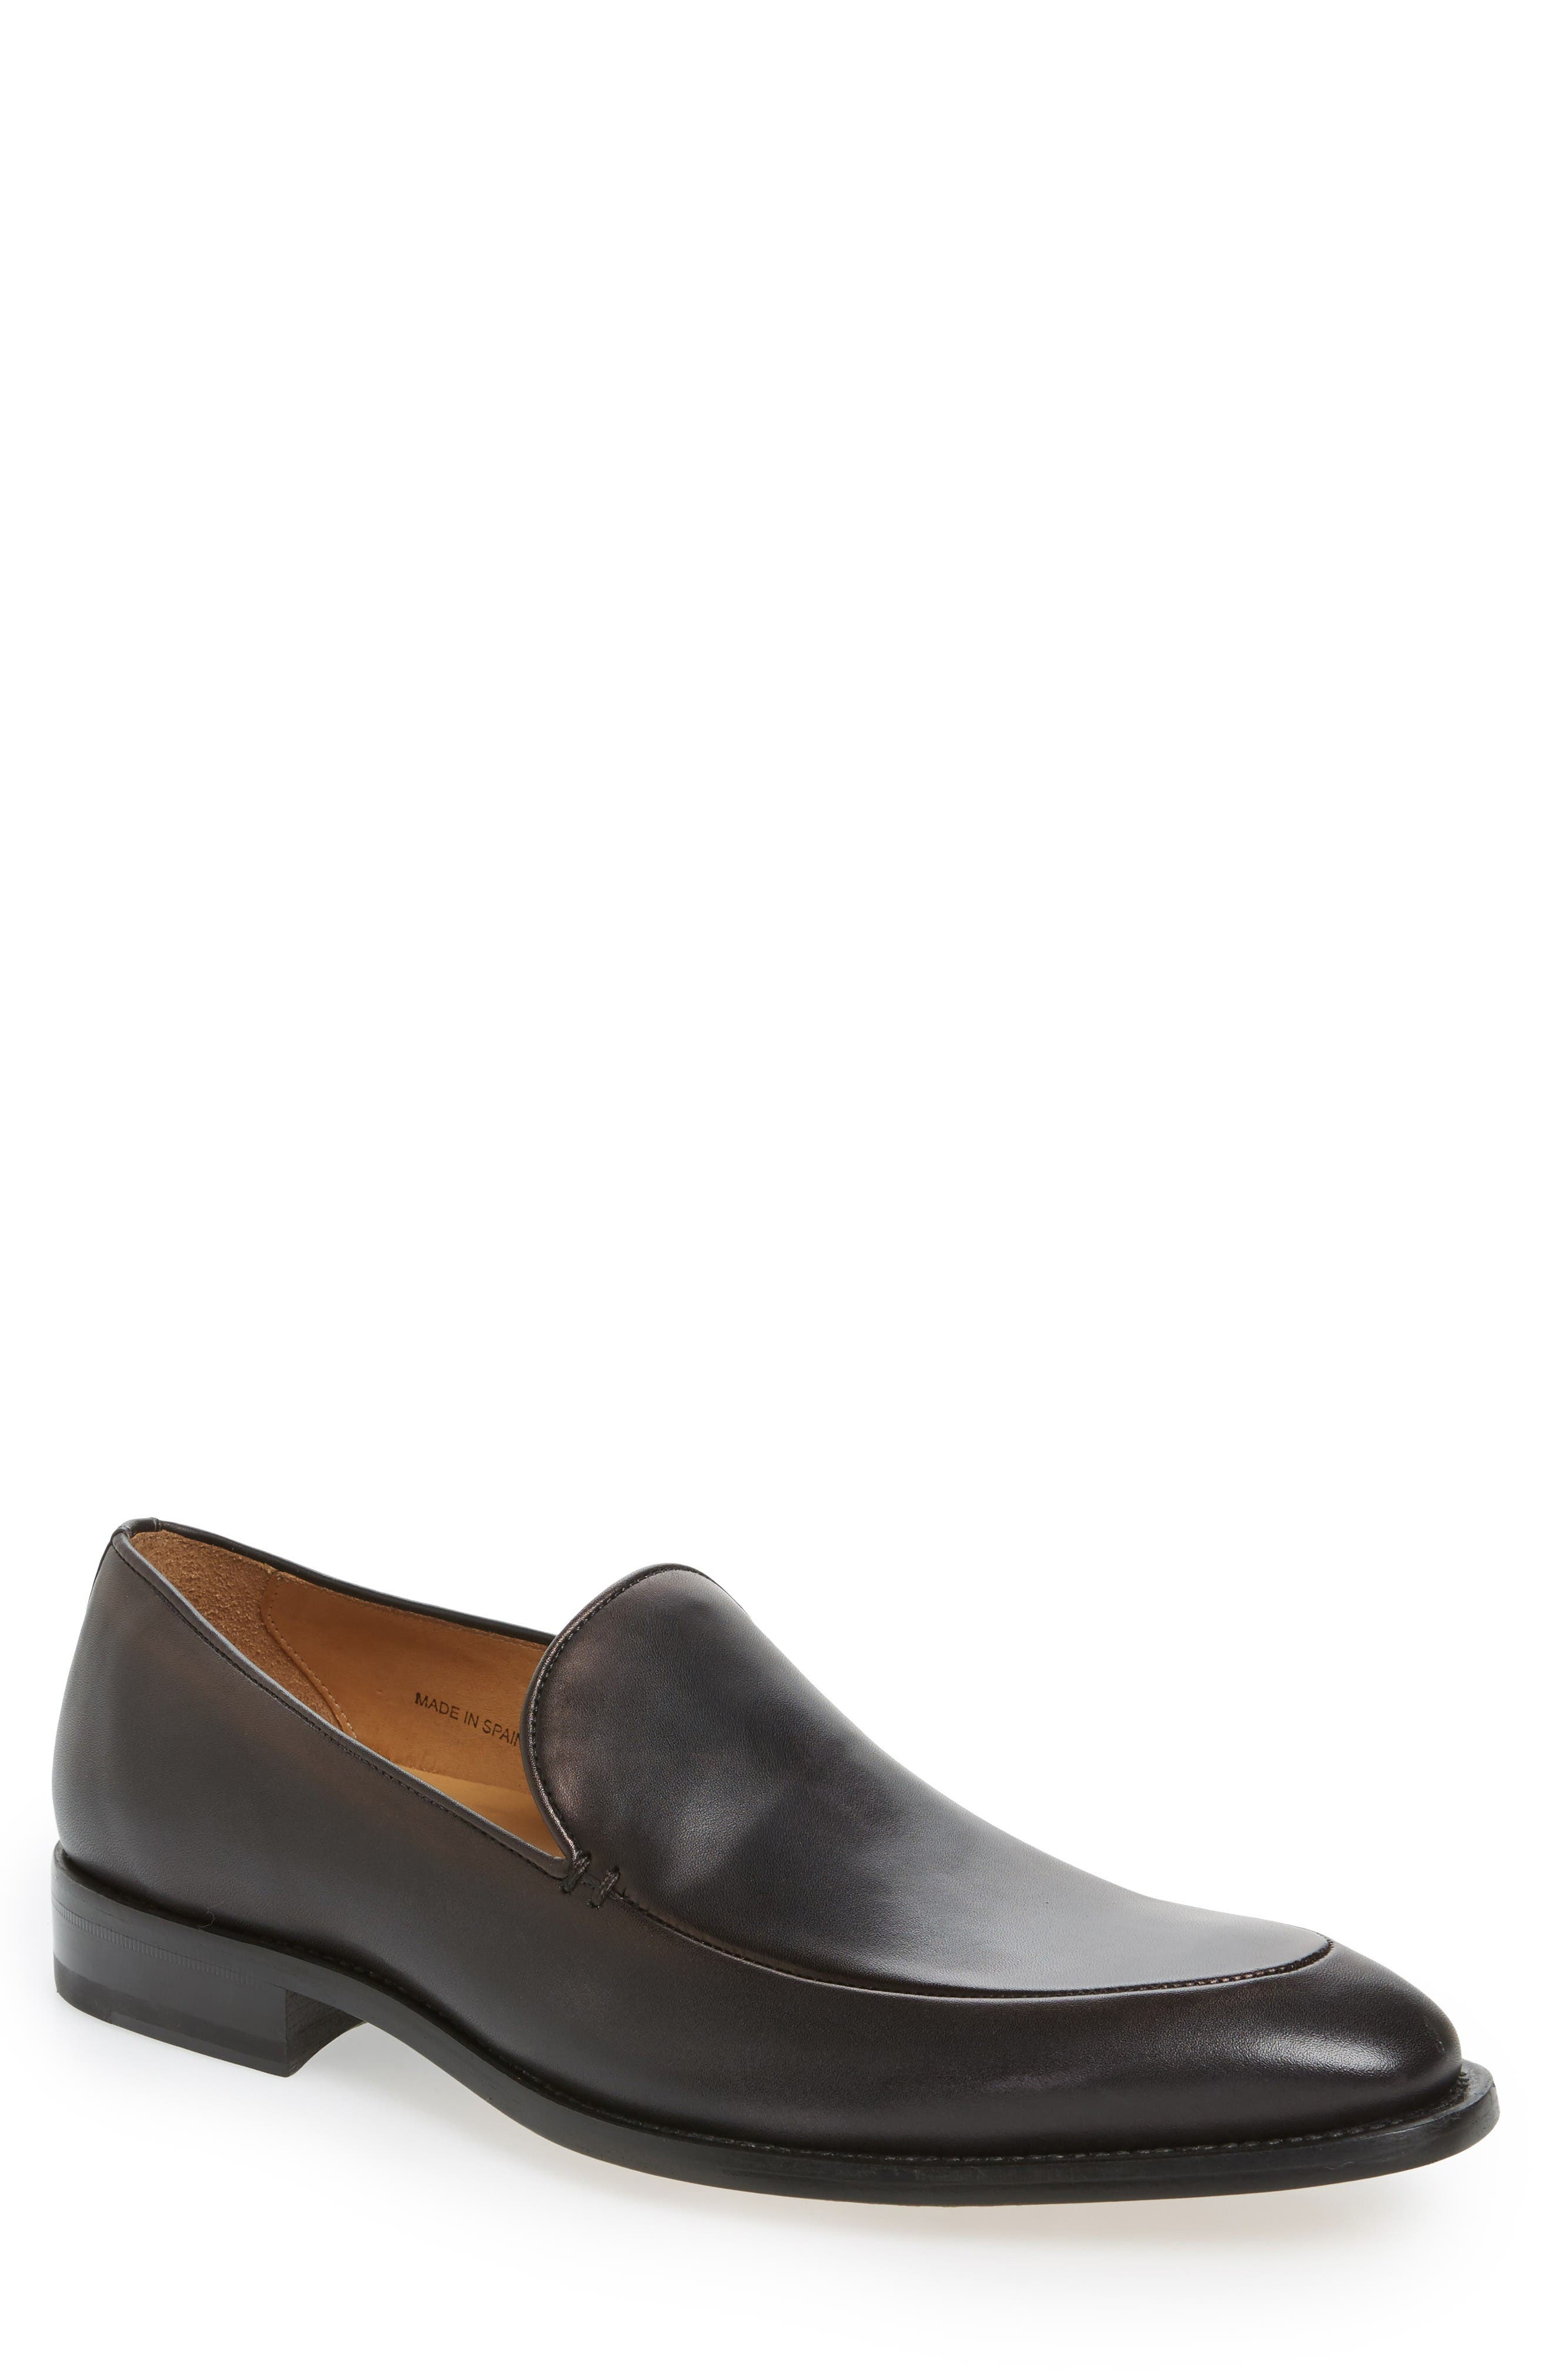 Strauss Venetian Loafer,                             Main thumbnail 1, color,                             Graphite Leather